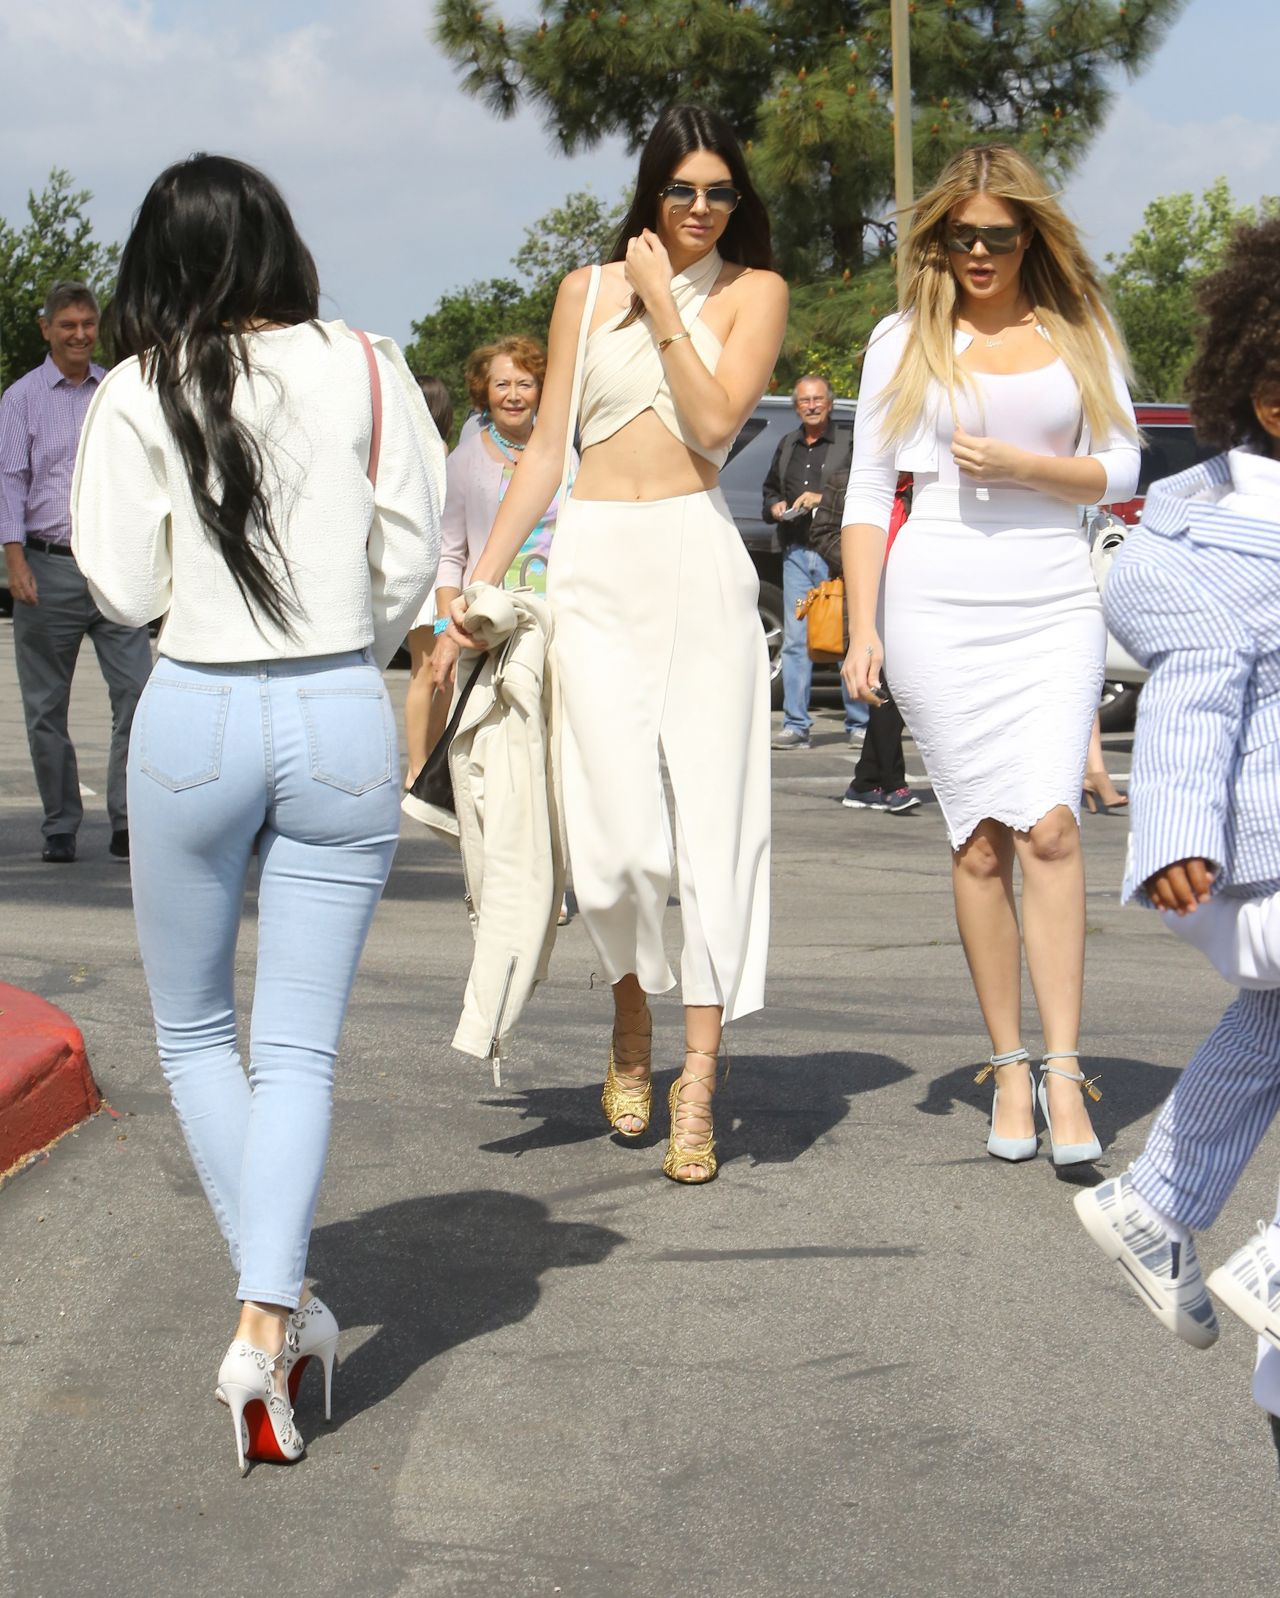 kylie-jenner-booty-in-tight-jeans-out-in-agoura-hills-april-2015_8.jpg